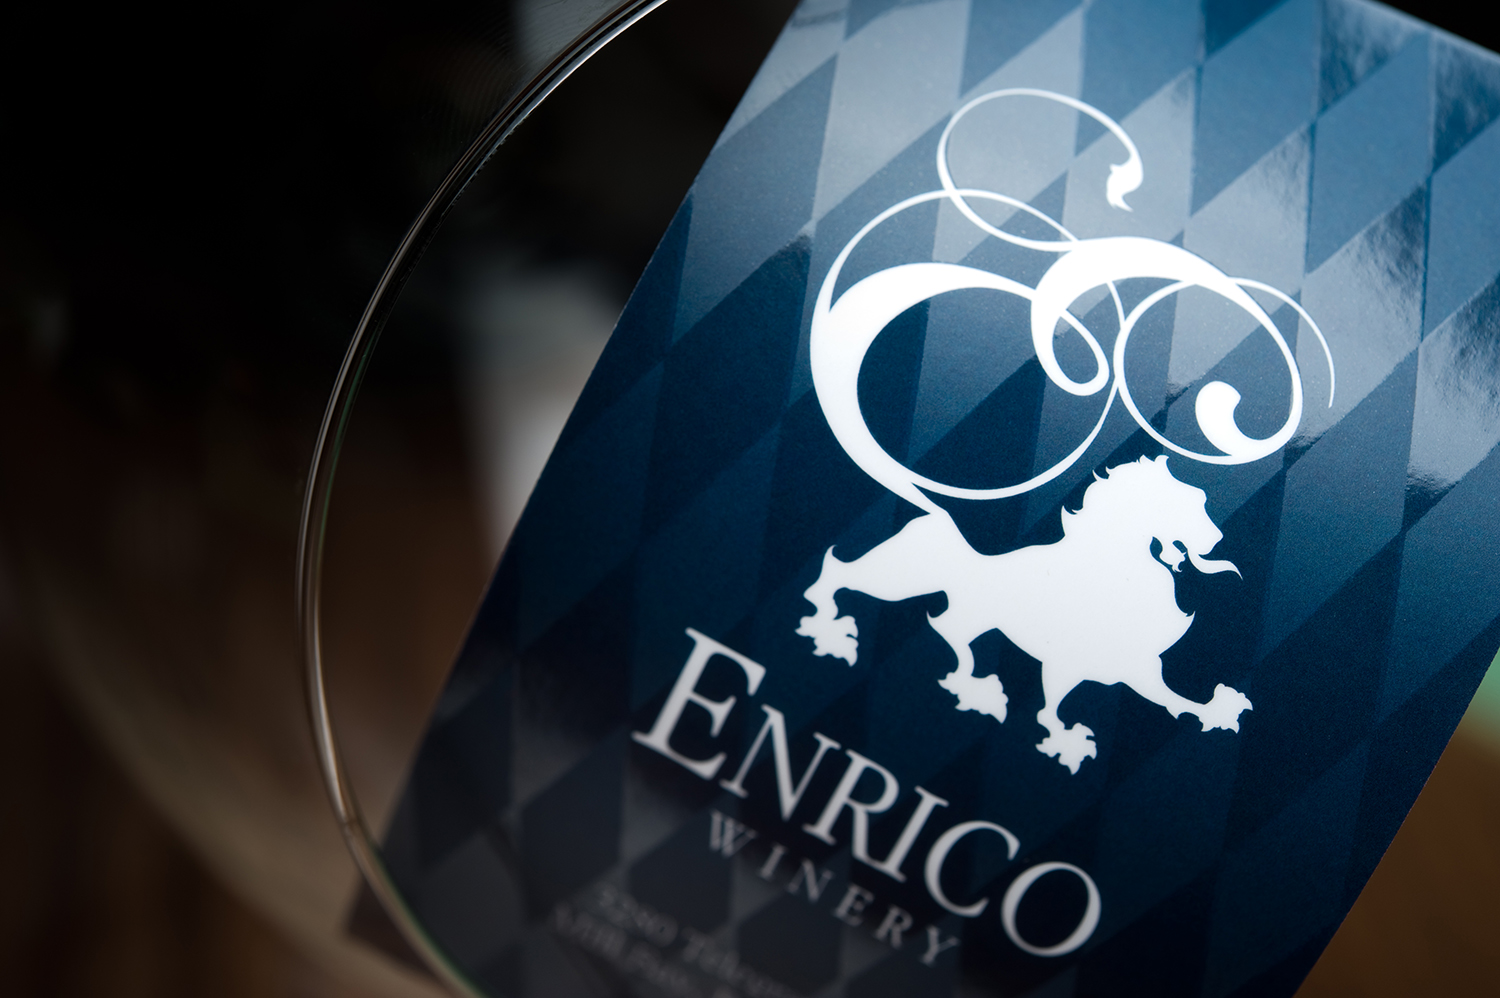 Packaging and Branding Design for Enrico Winery